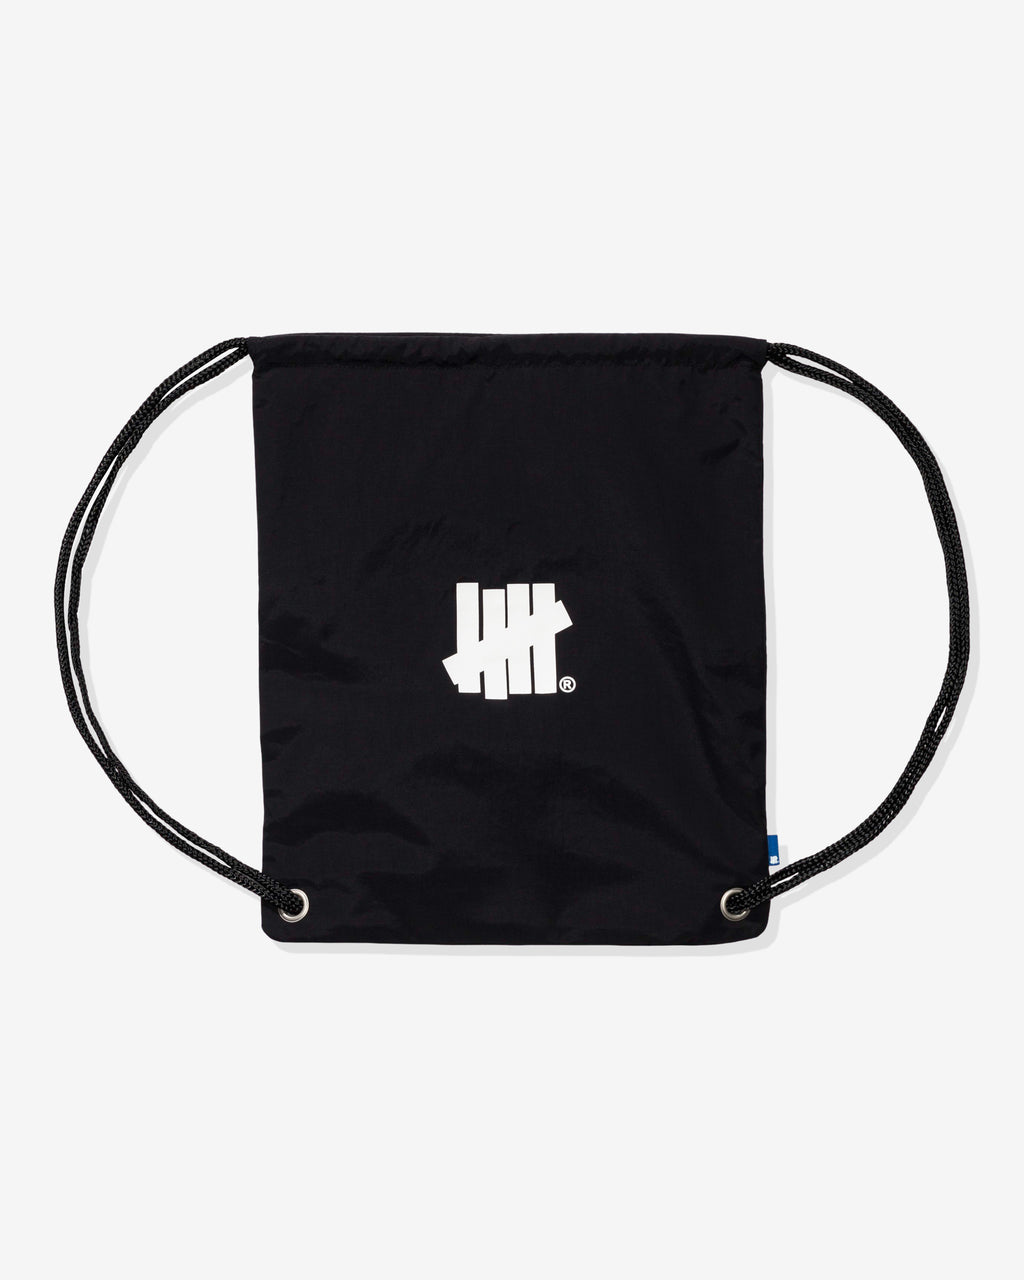 UNDEFEATED CINCH BAG - BLACK